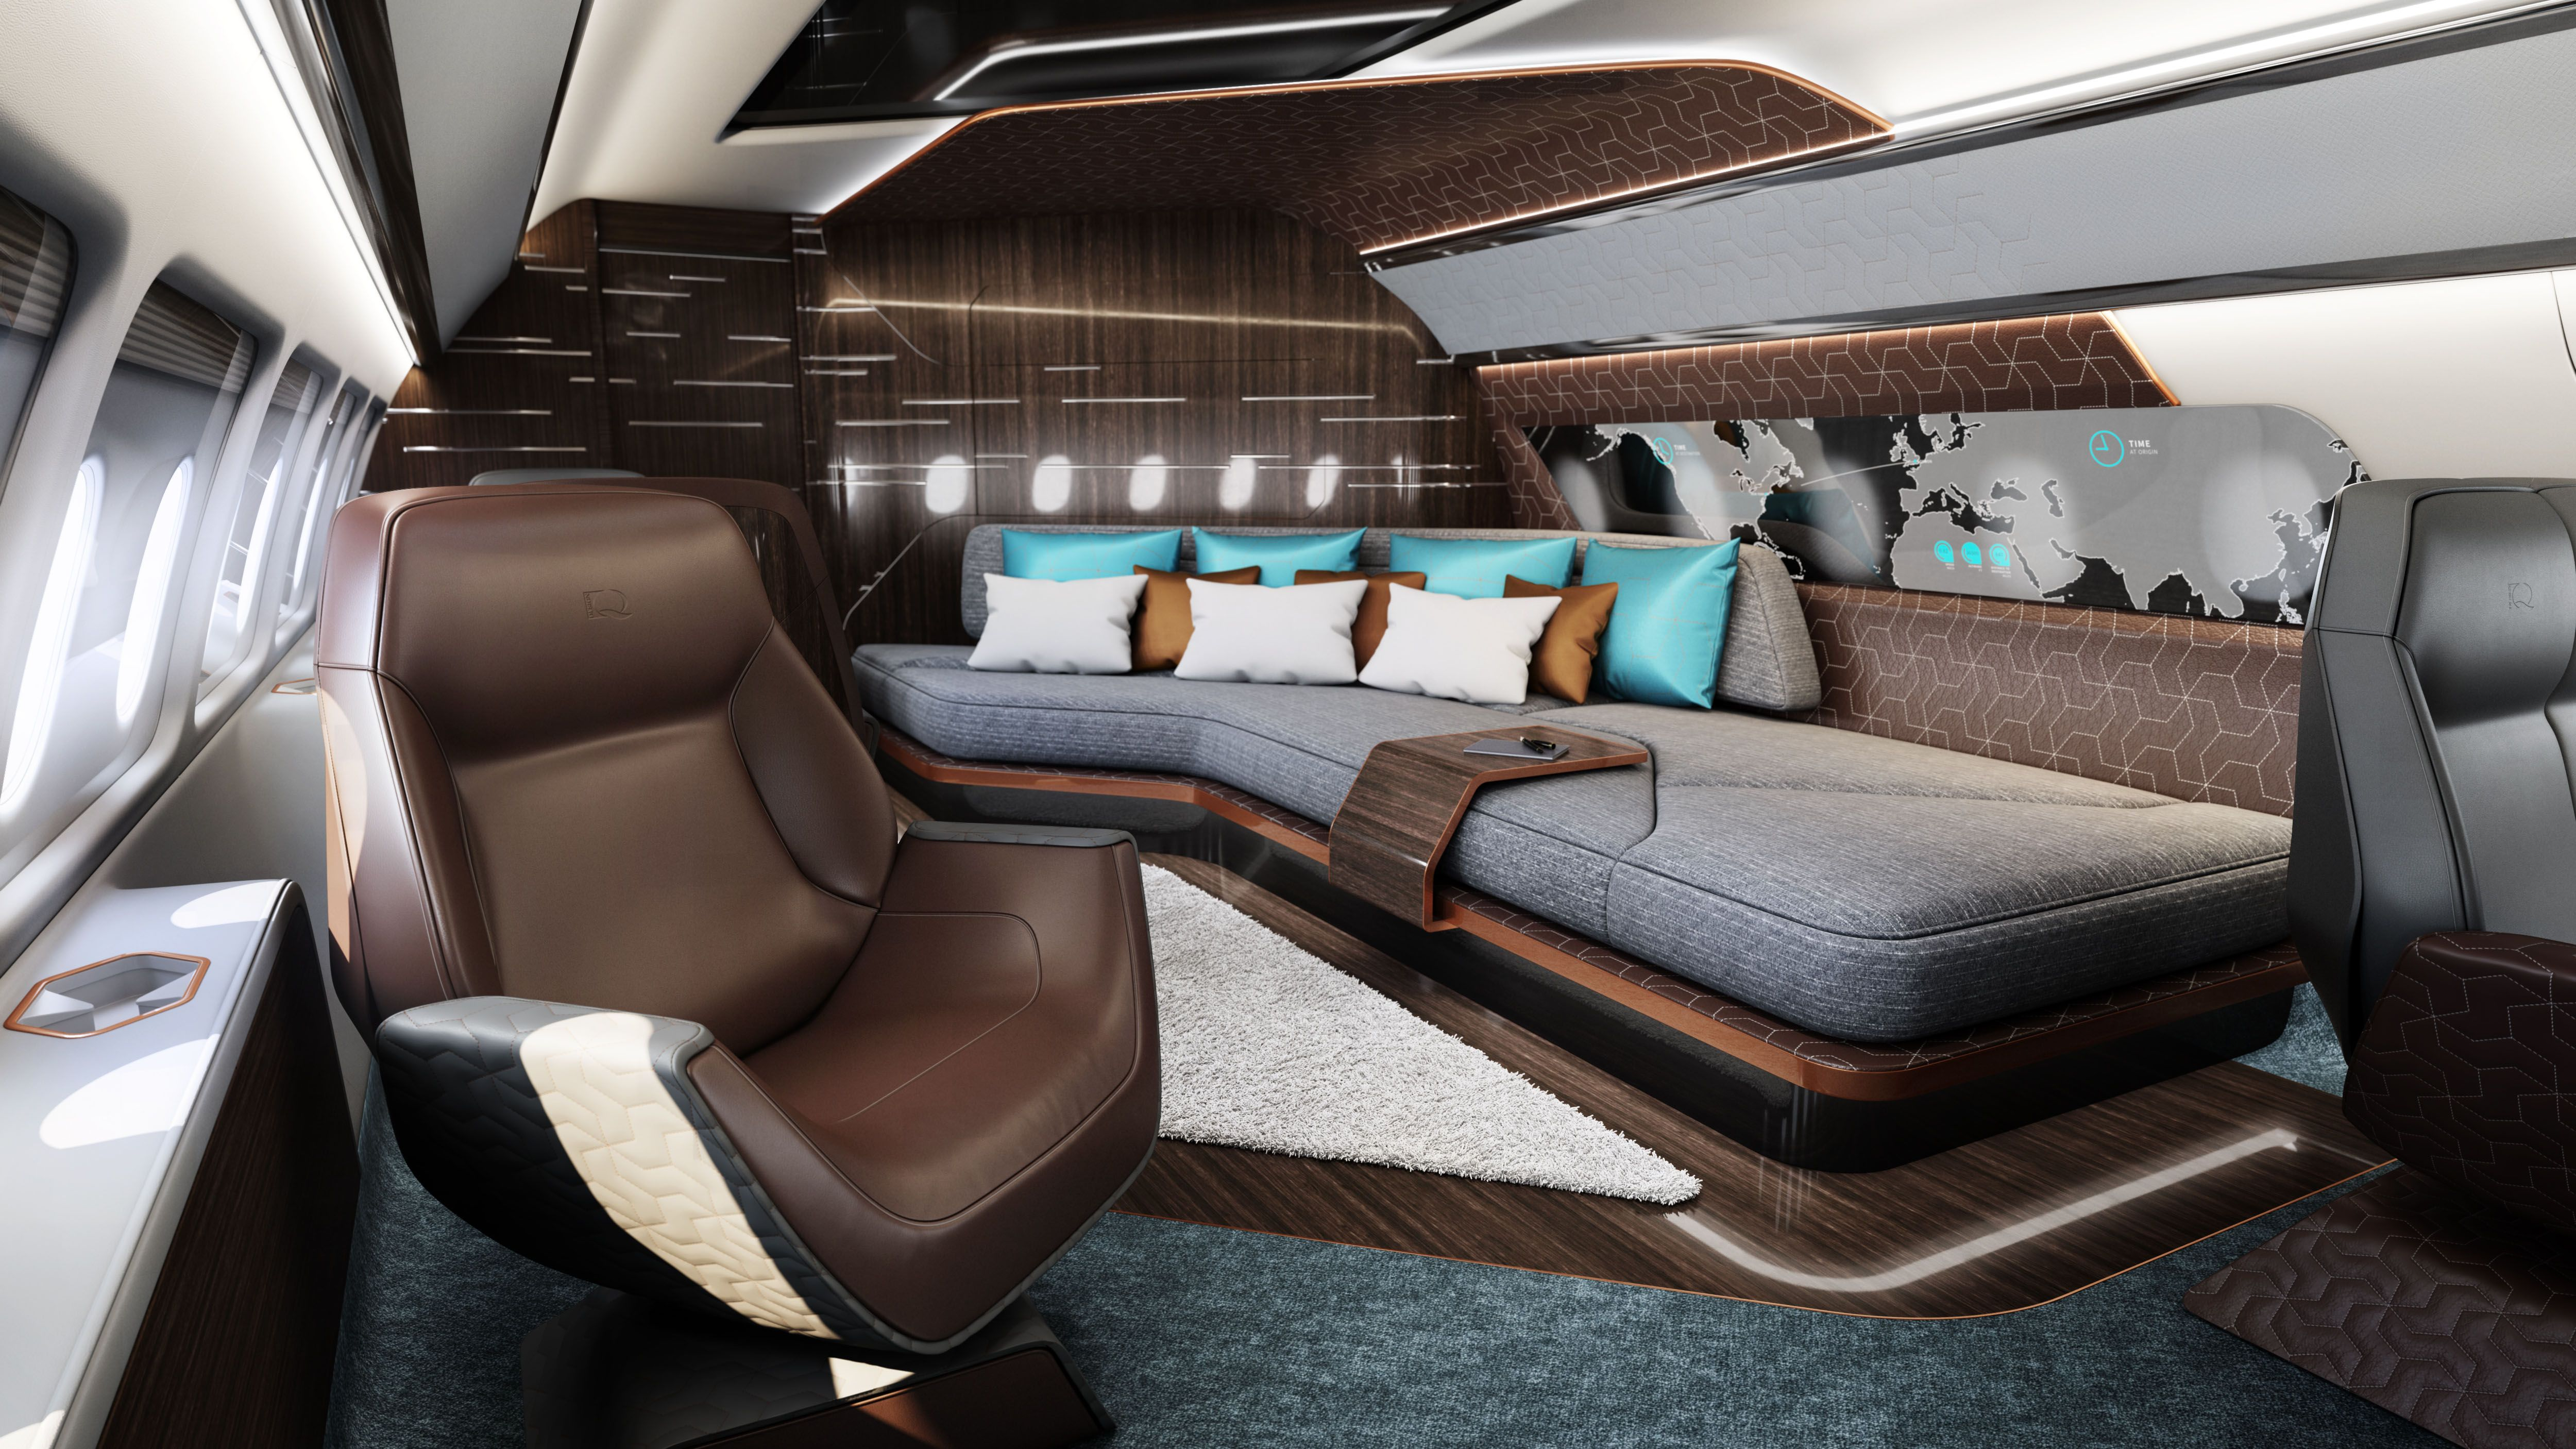 Design Q Takes A Fresh Approach To Jet Interiors With Images